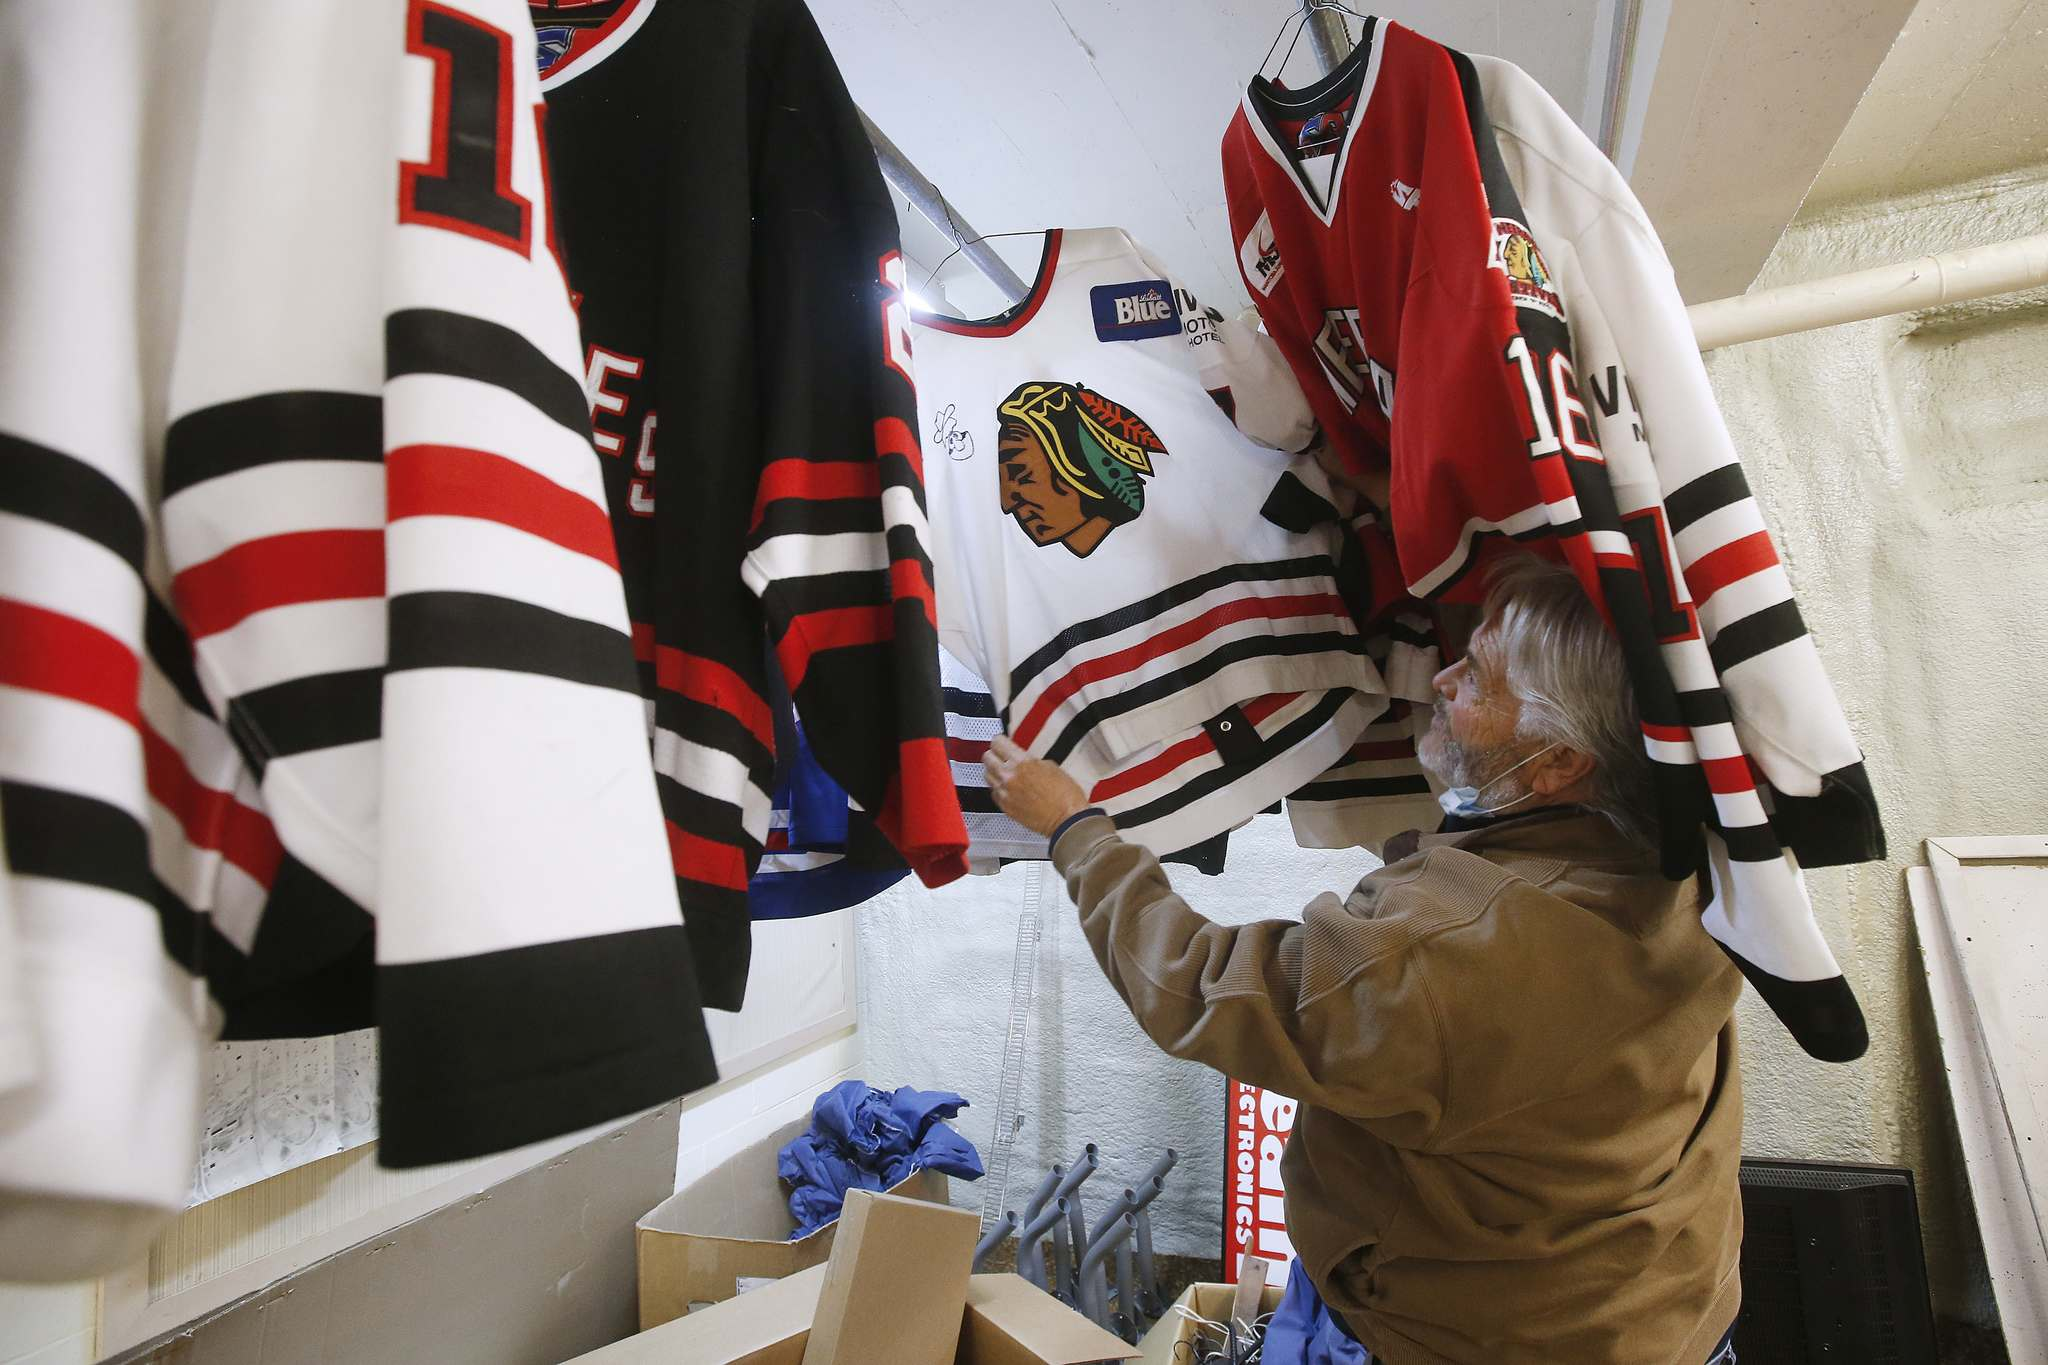 JOHN WOODS / WINNIPEG FREE PRESS</p><p>Dave McIntosh, a business owner in Neepawa, looks through his Neepawa Natives jersey collection. McIntosh was a driving force behind the Neepawa Natives organization for years. </p>